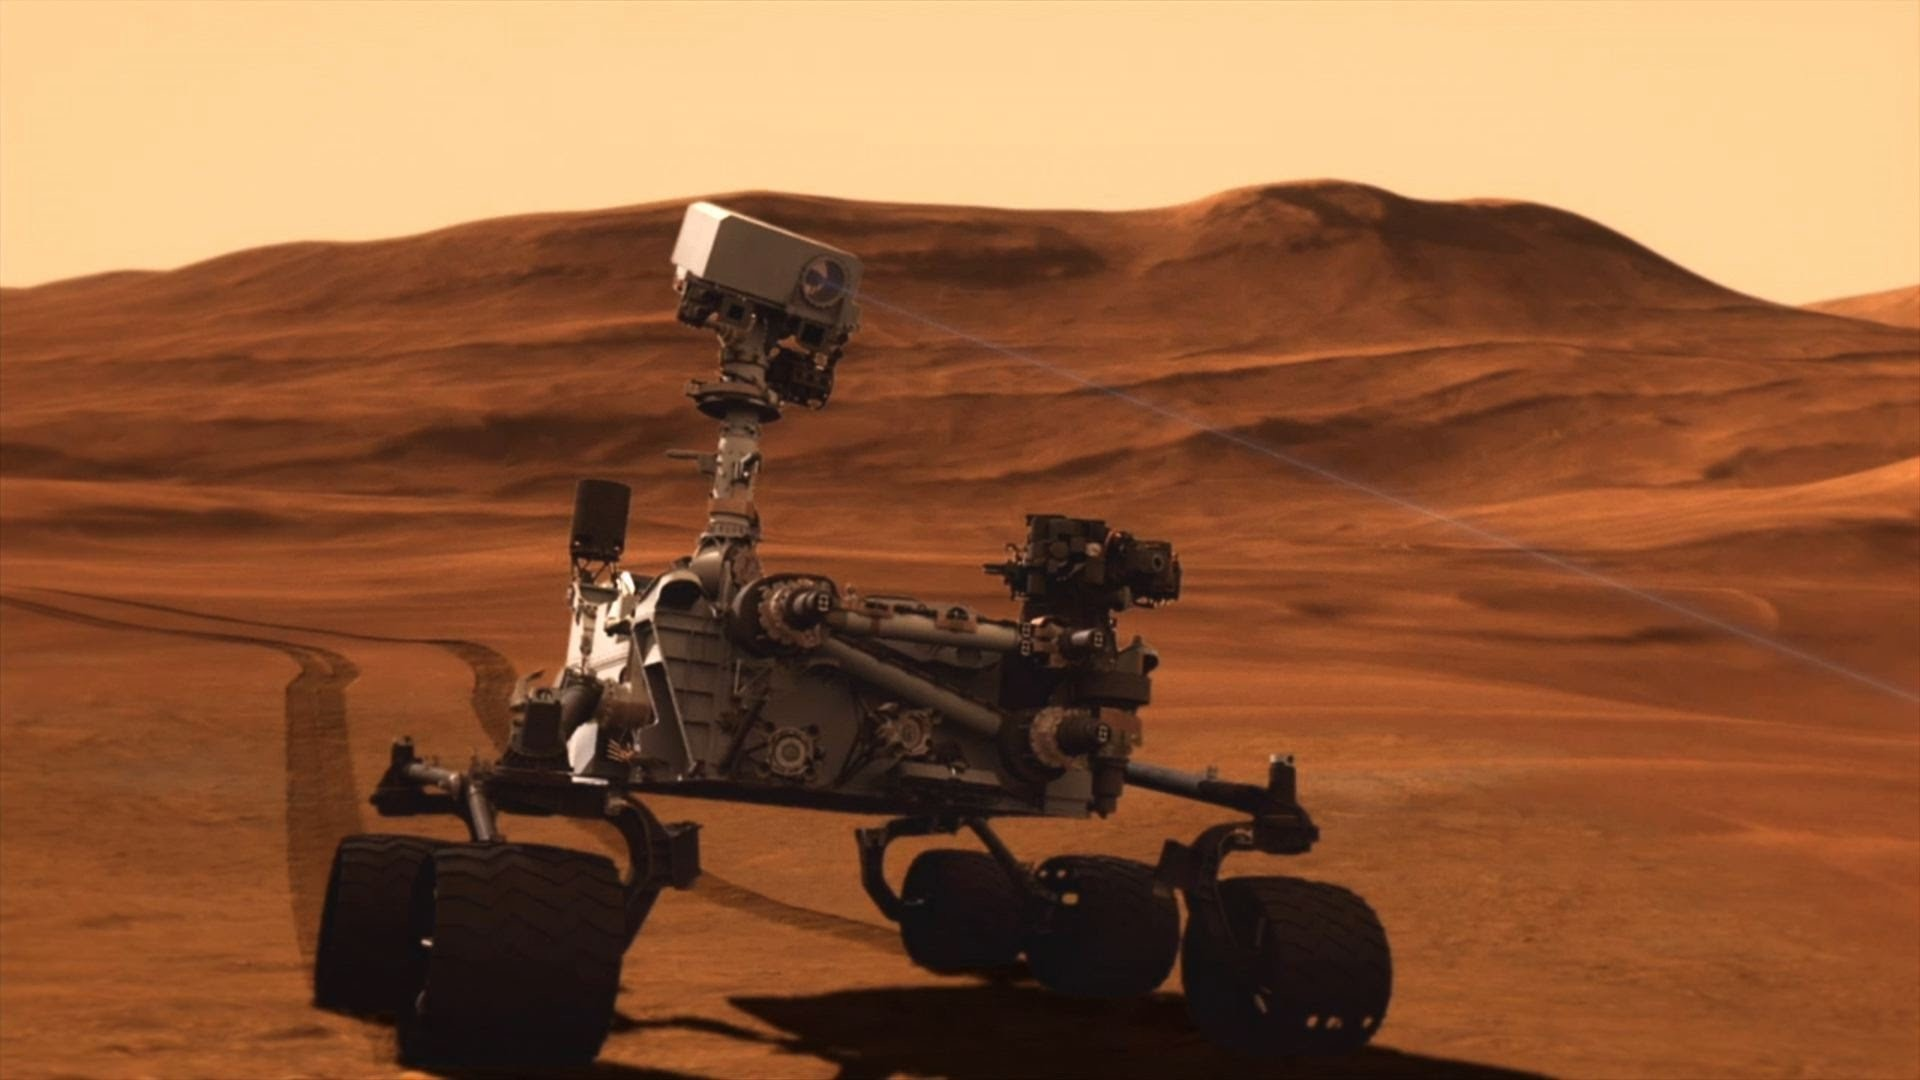 Res: 1920x1080, Liz meets the Mars Curiosity Rover's twin - Stargazing LIVE - Series 3  Episode 1 - BBC Two - YouTube